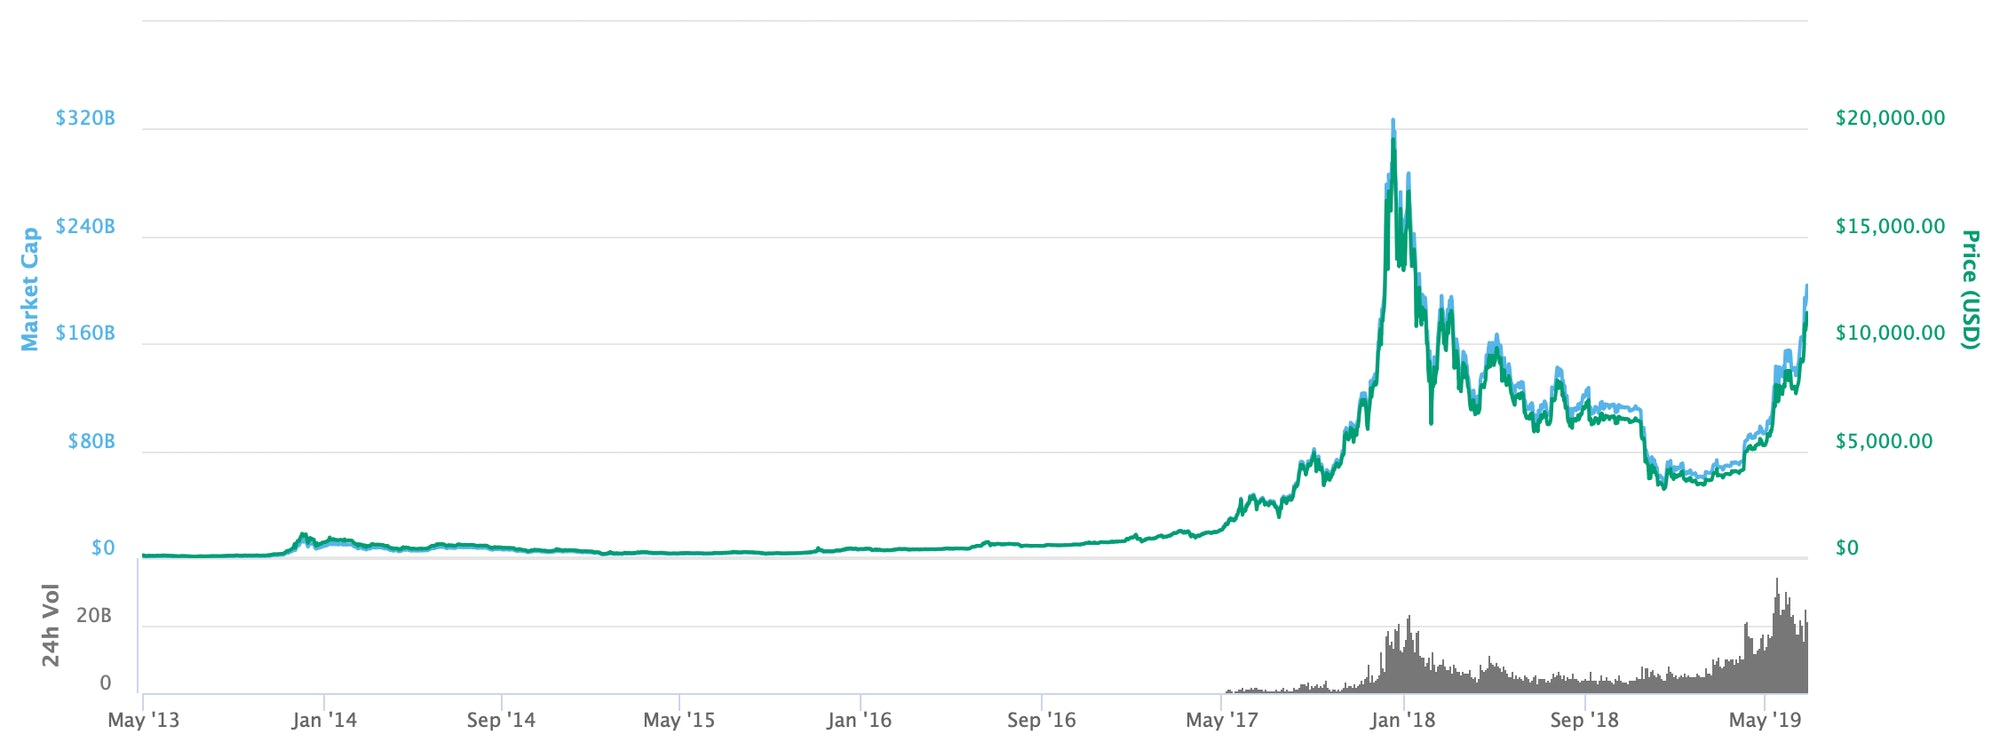 Bitcoin's price over all time.